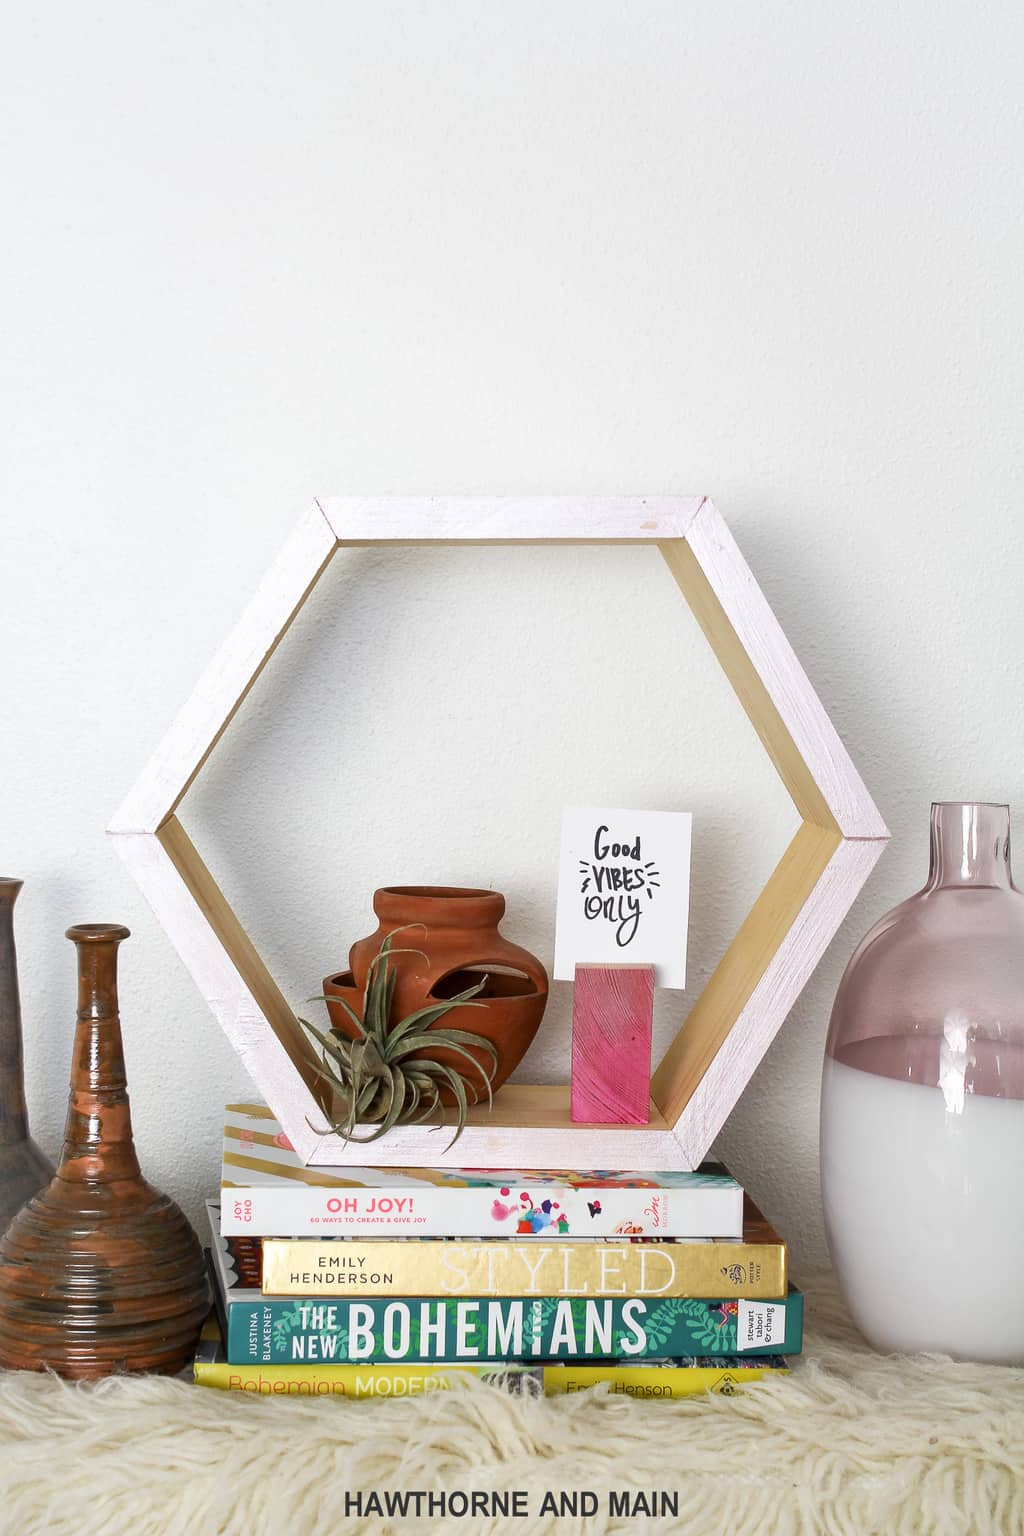 I love this modern DIY hexagon shelf! It looks easy to make and would be perfect for my house!